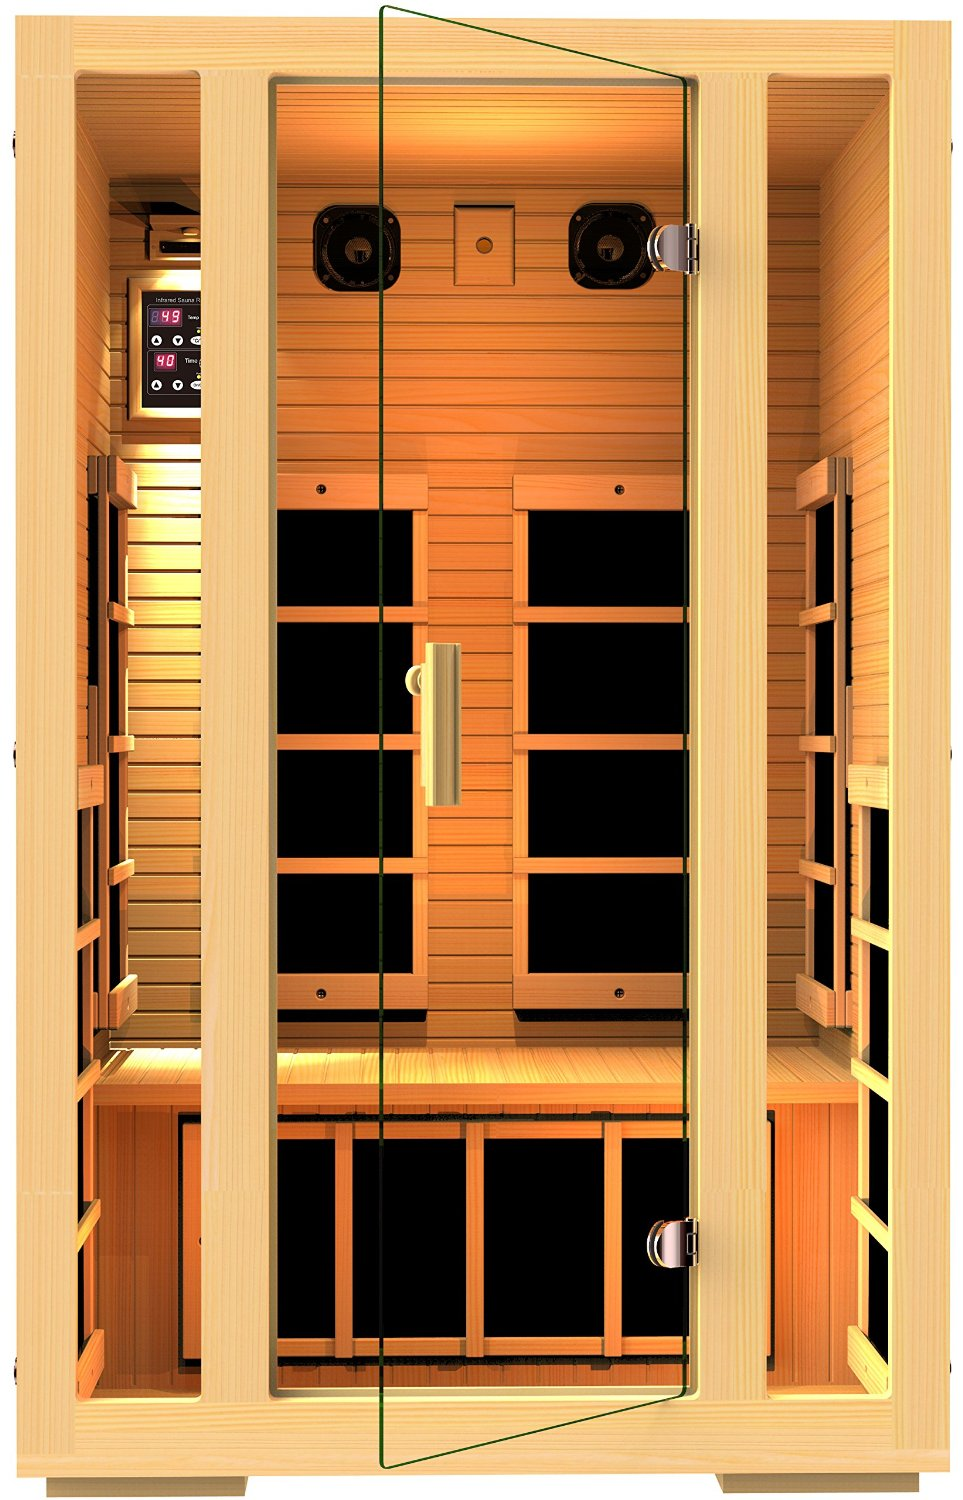 Infrared Sauna Reviews 2019 1 Best Model For Every Budget For Home